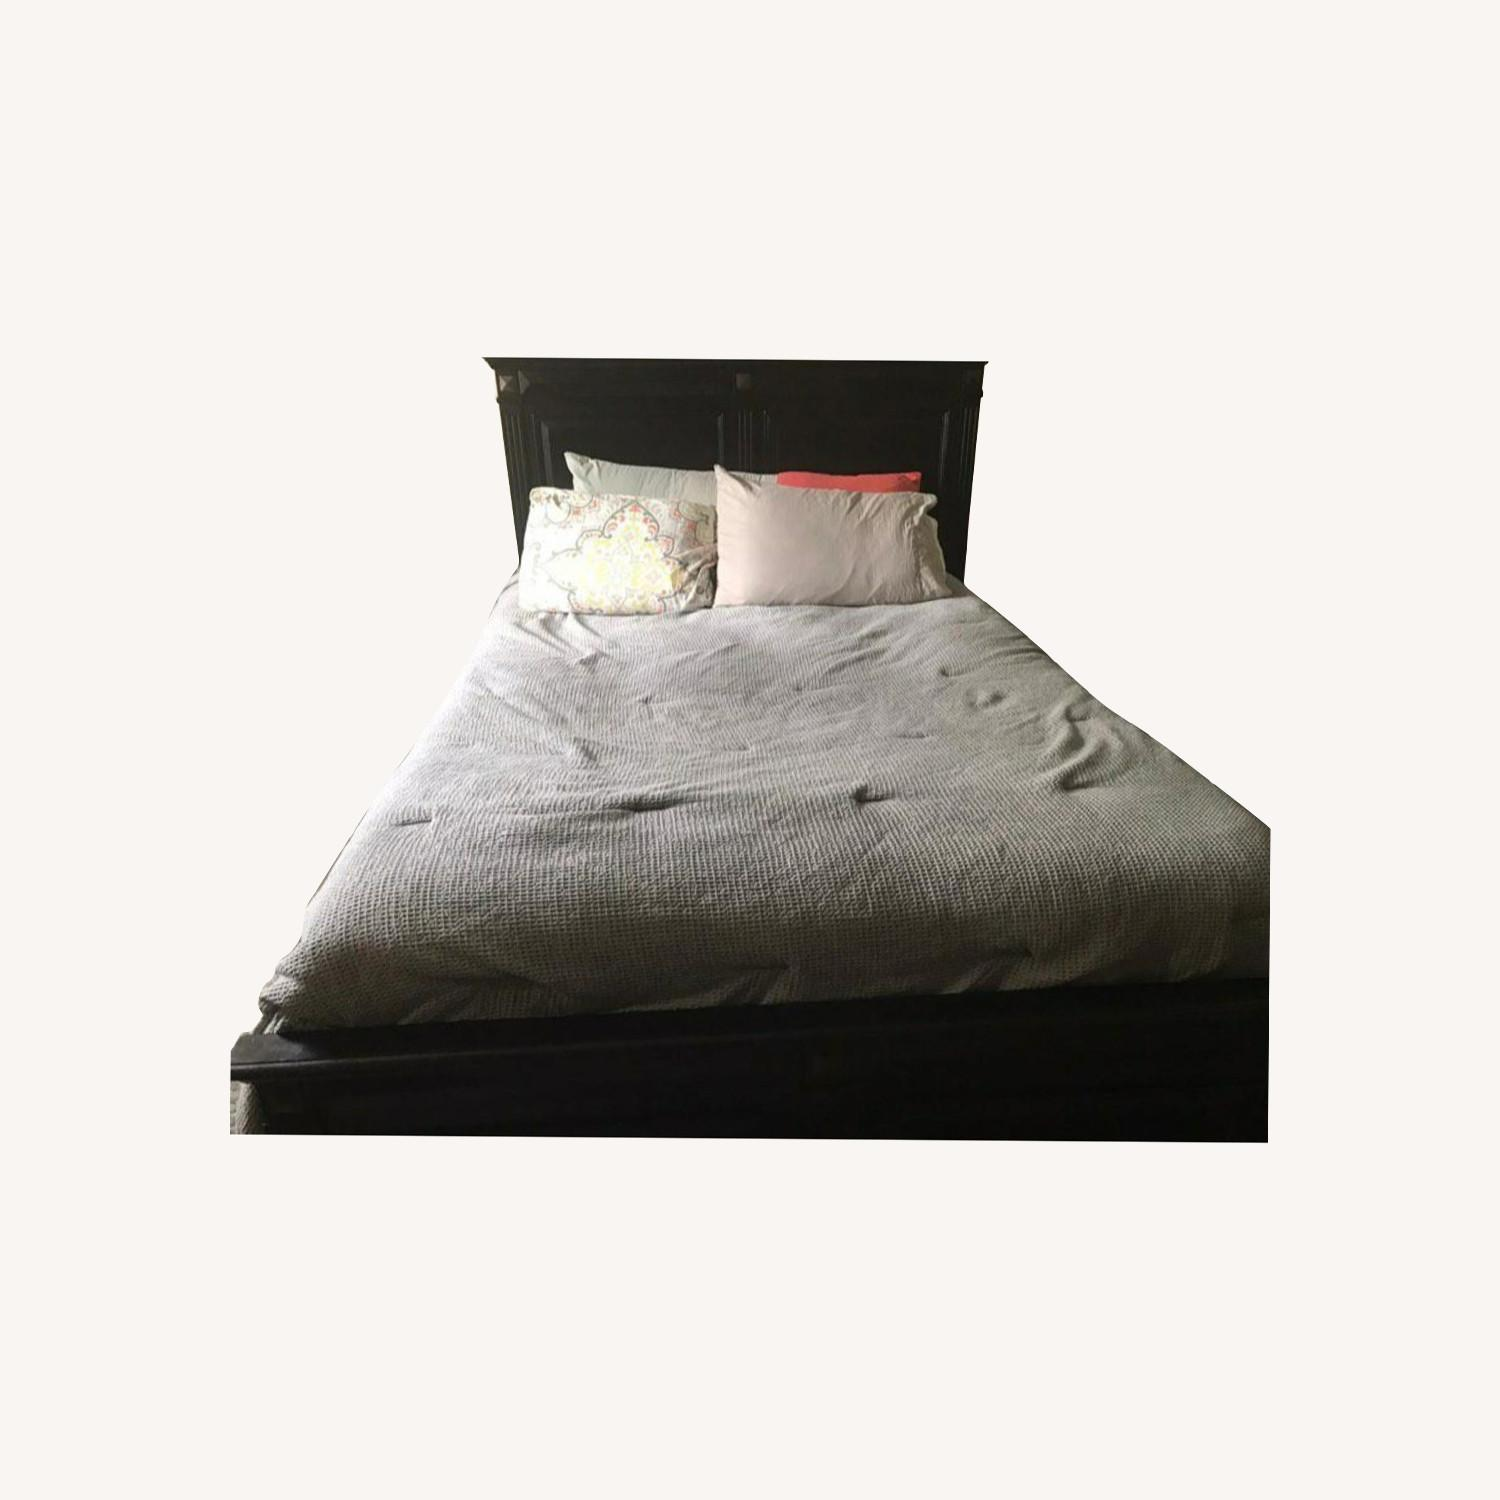 Dark Wood Queen Sized Bed - image-0